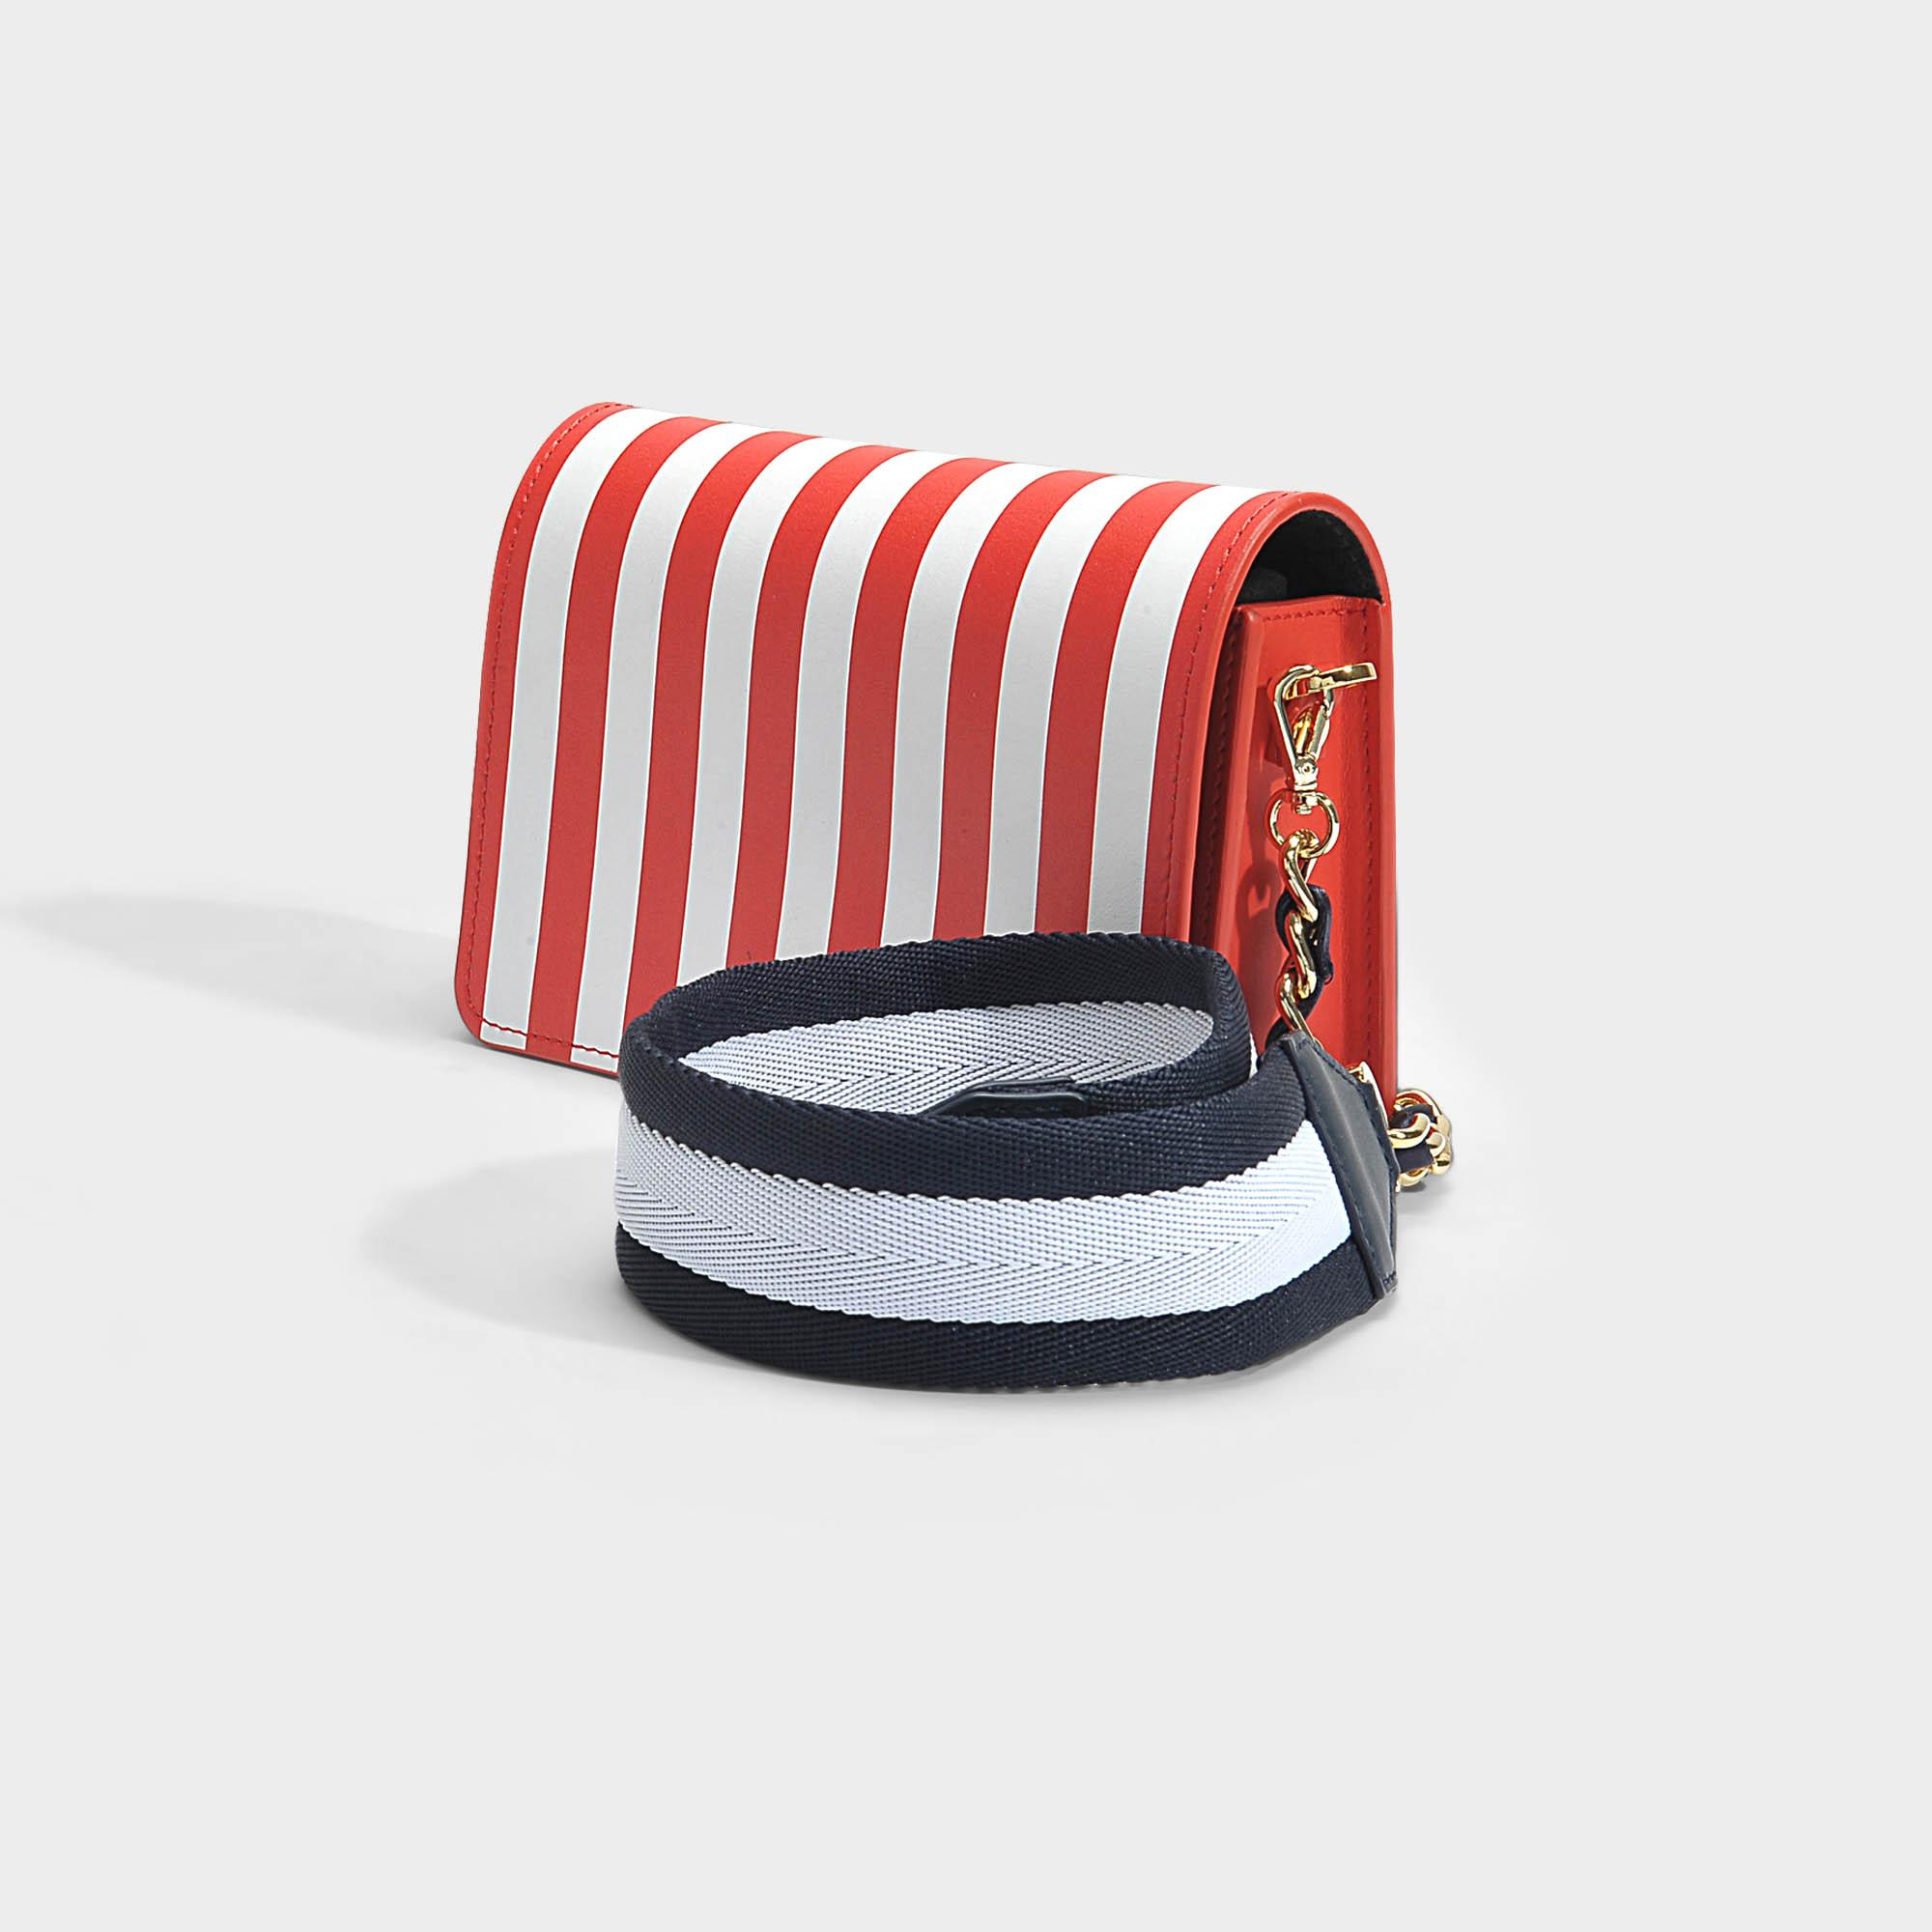 Jude Crossbody Bag in Red and White Calfskin Mother Of Pearl Clearance Online Fake Discount Good Selling Free Shipping Amazon Cheap Sale Best Place Outlet Discount nBd3lj